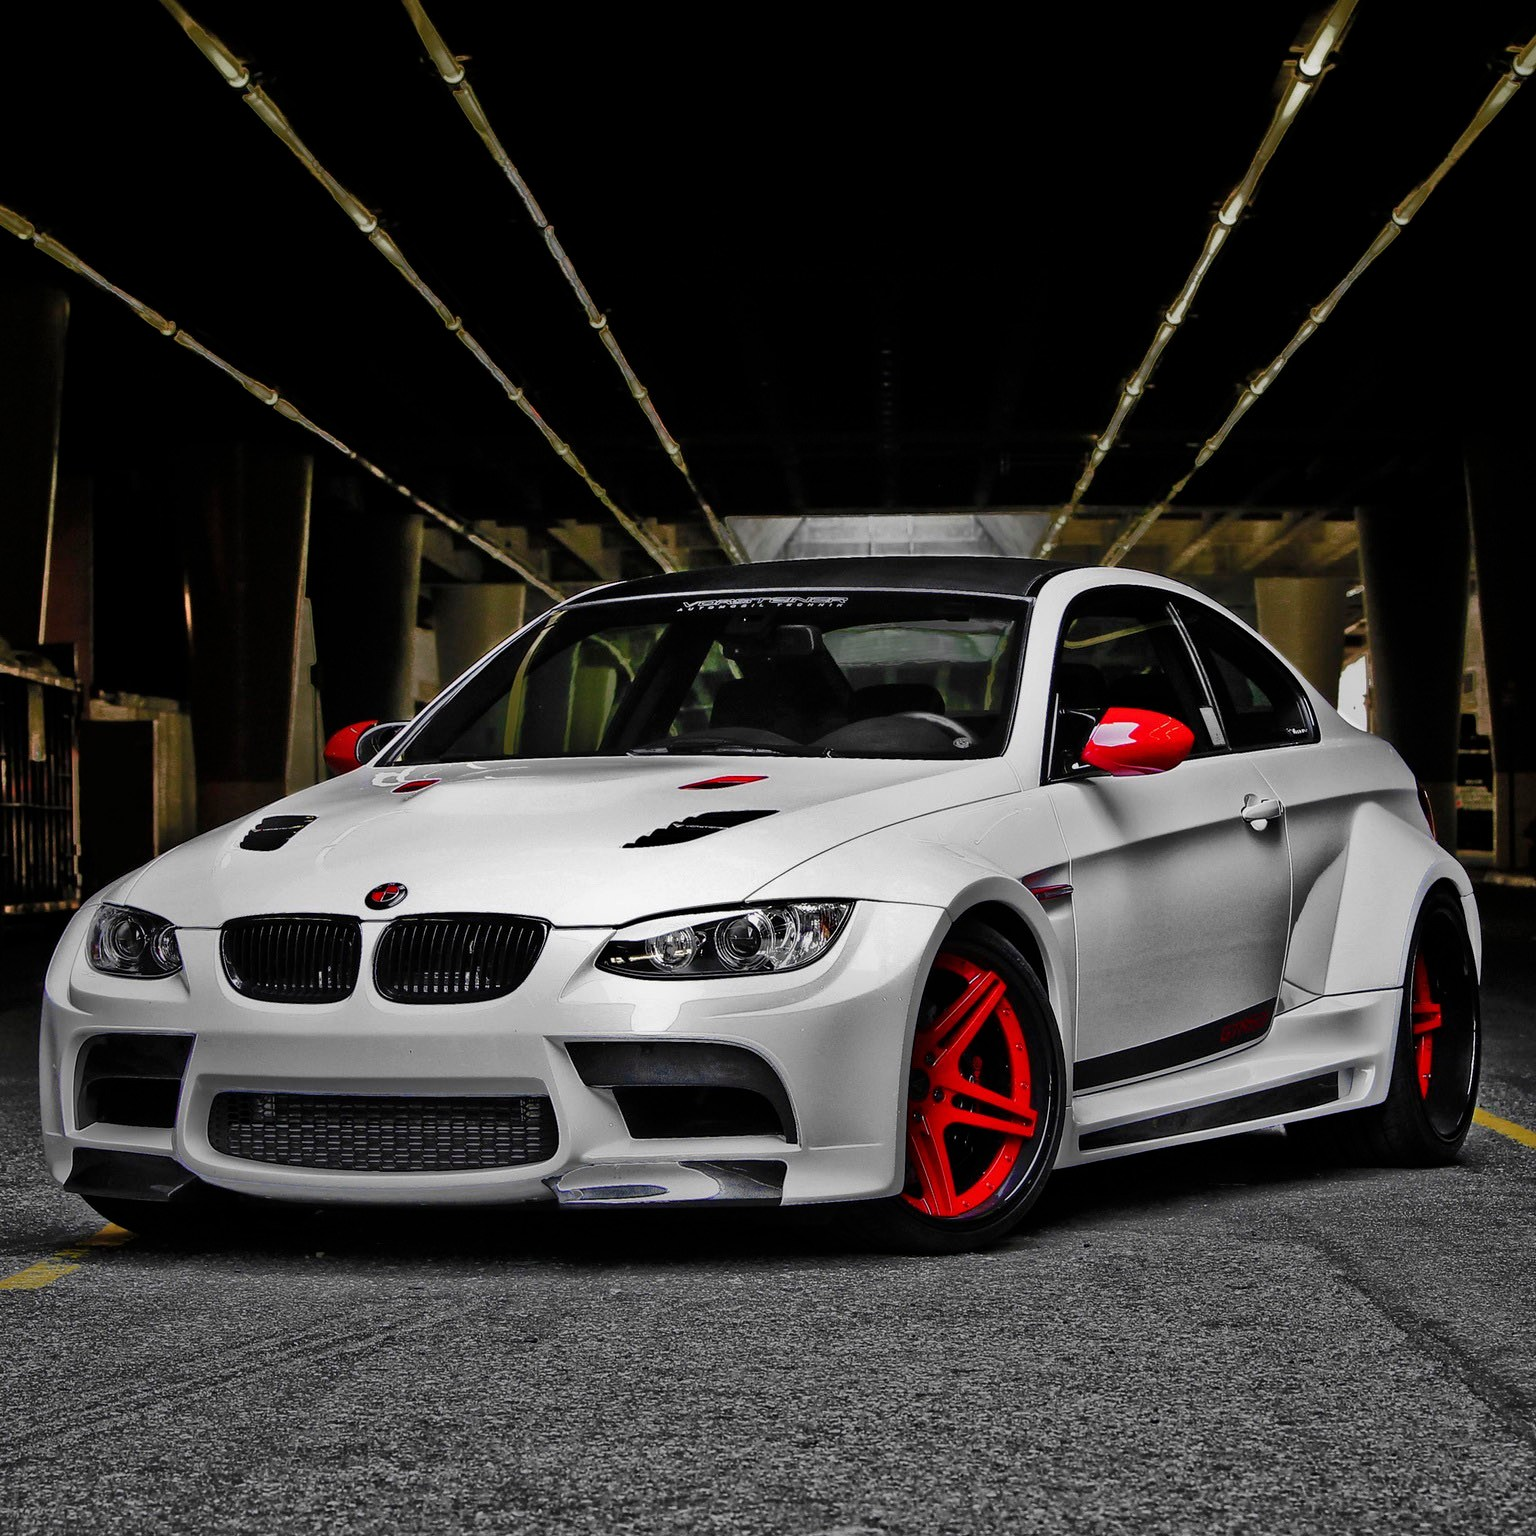 2011 Vorsteiner - Bmw M3 Coupe GTRS3 Candy Cane e92